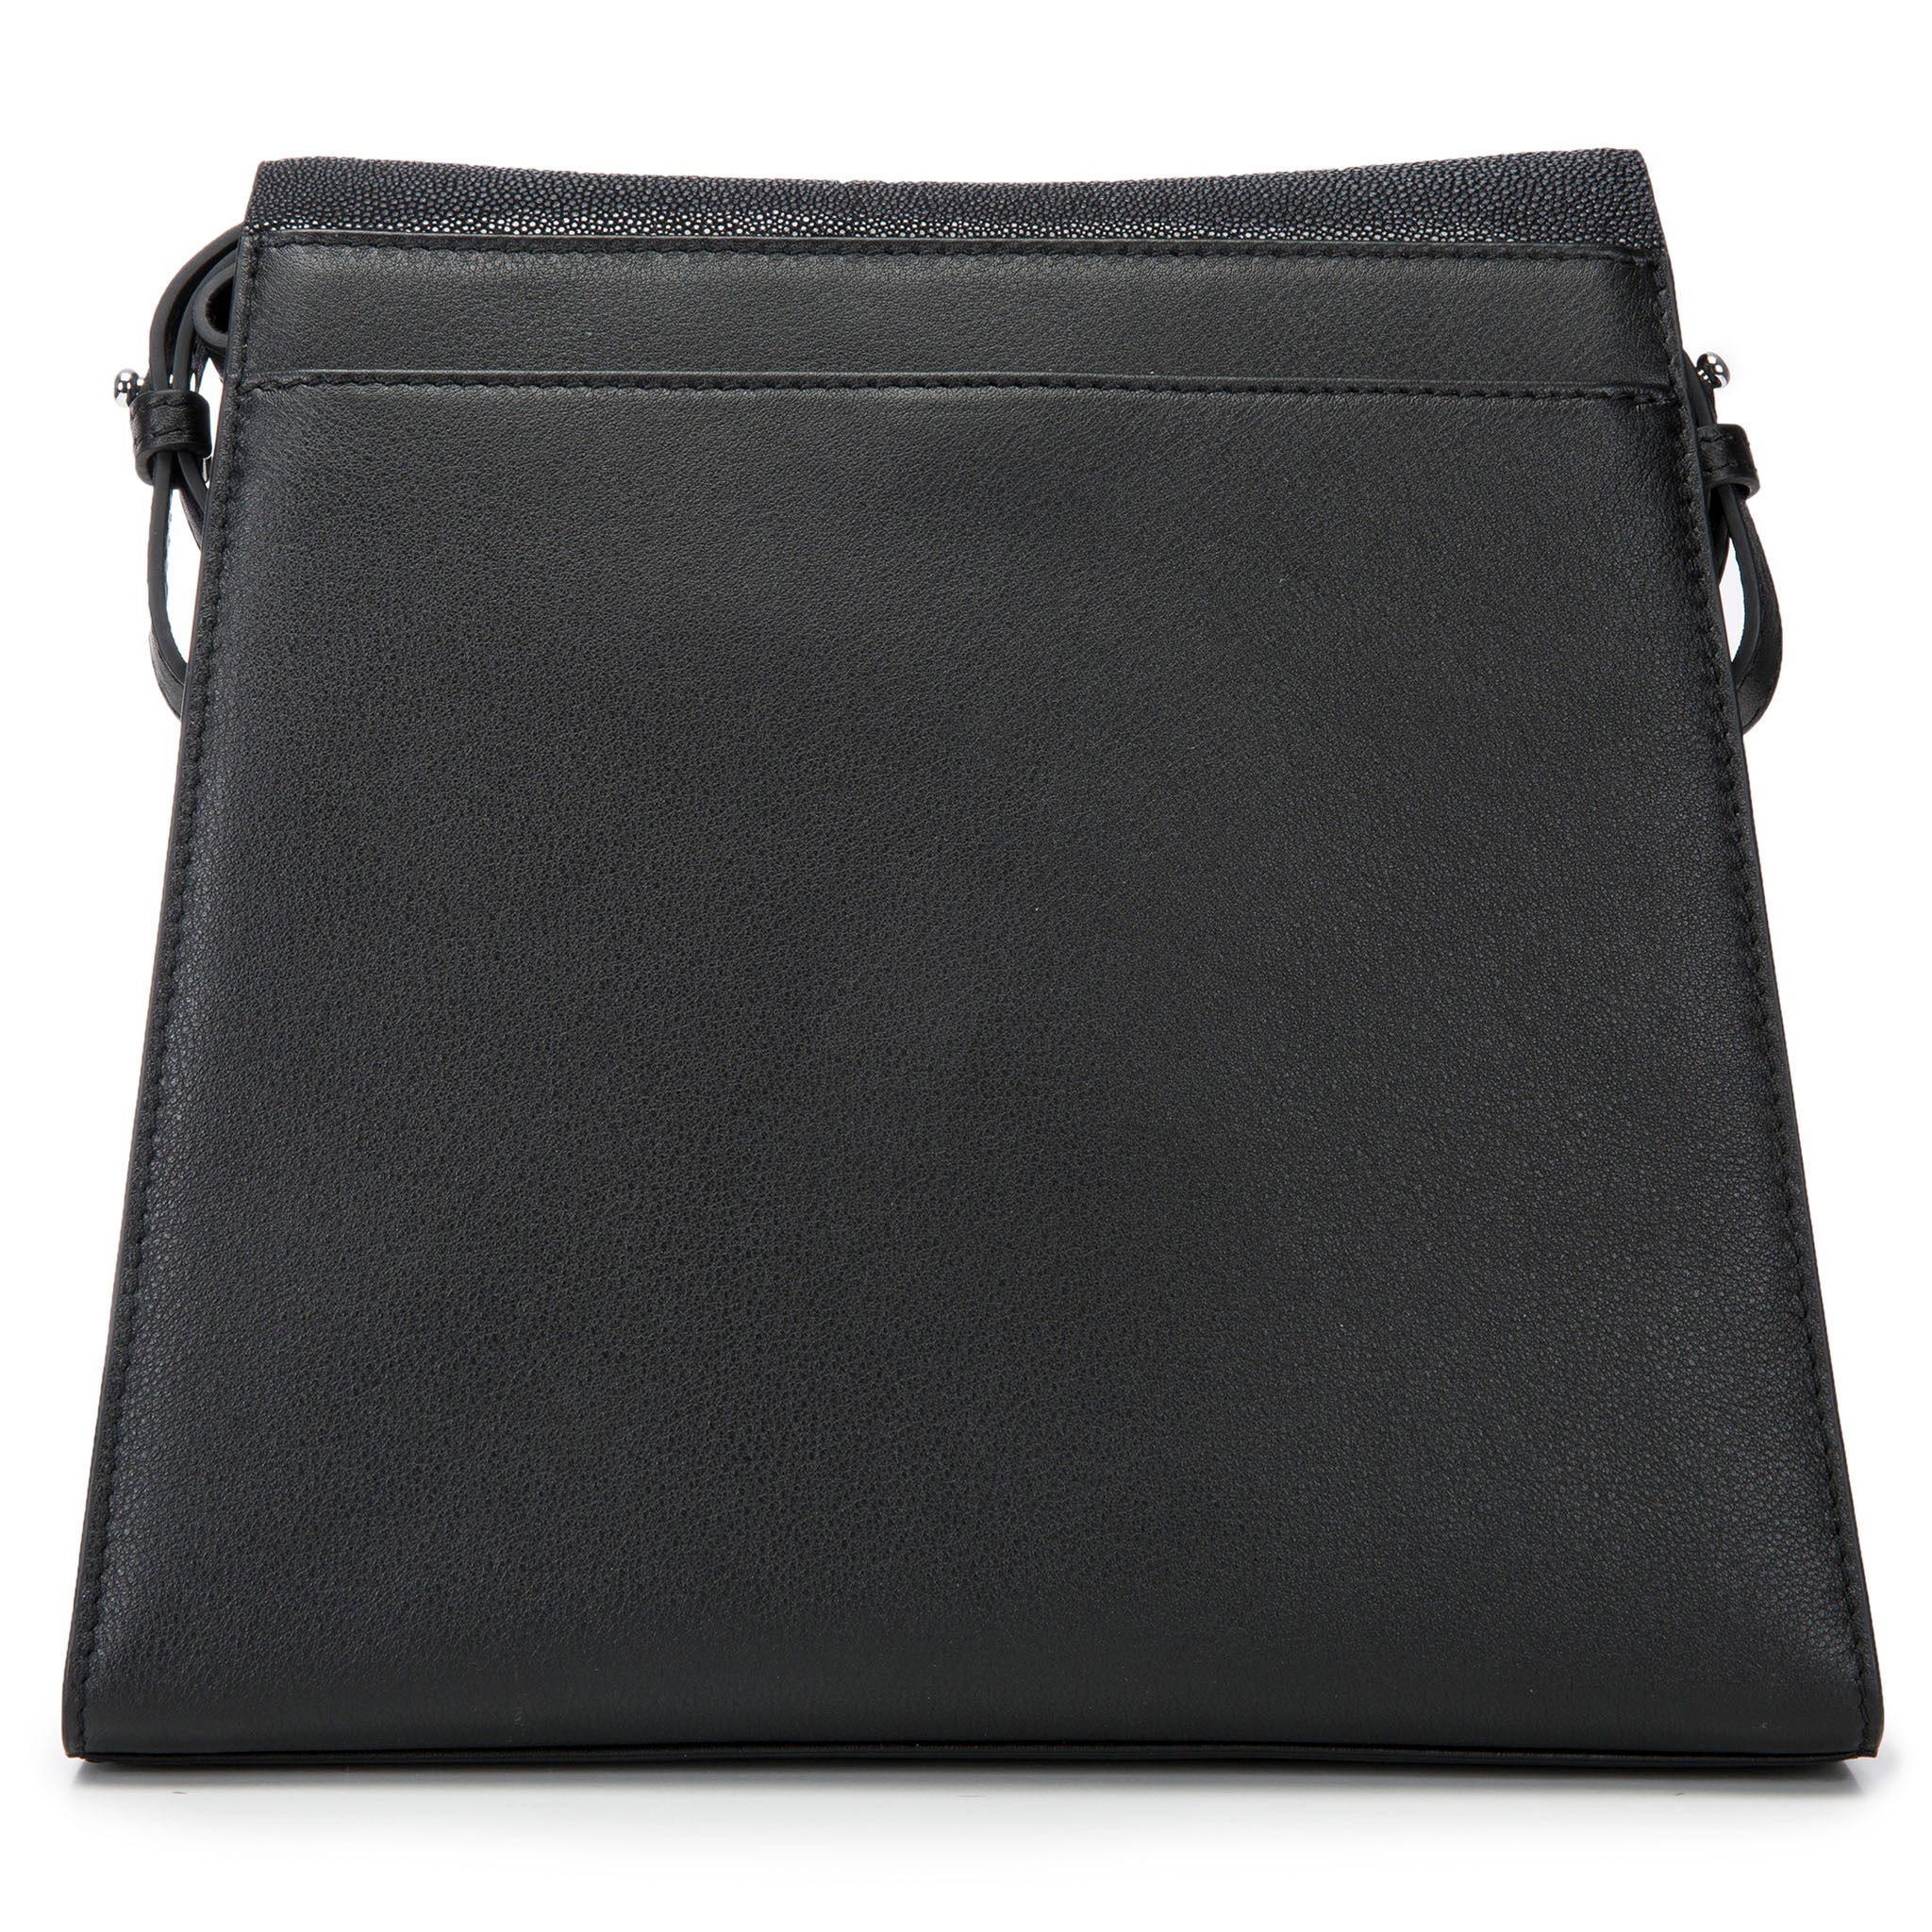 Modern Classic Crossbody Bag Black Shagreen Top And Black Leather Body Back View Jacq - Vivo Direct